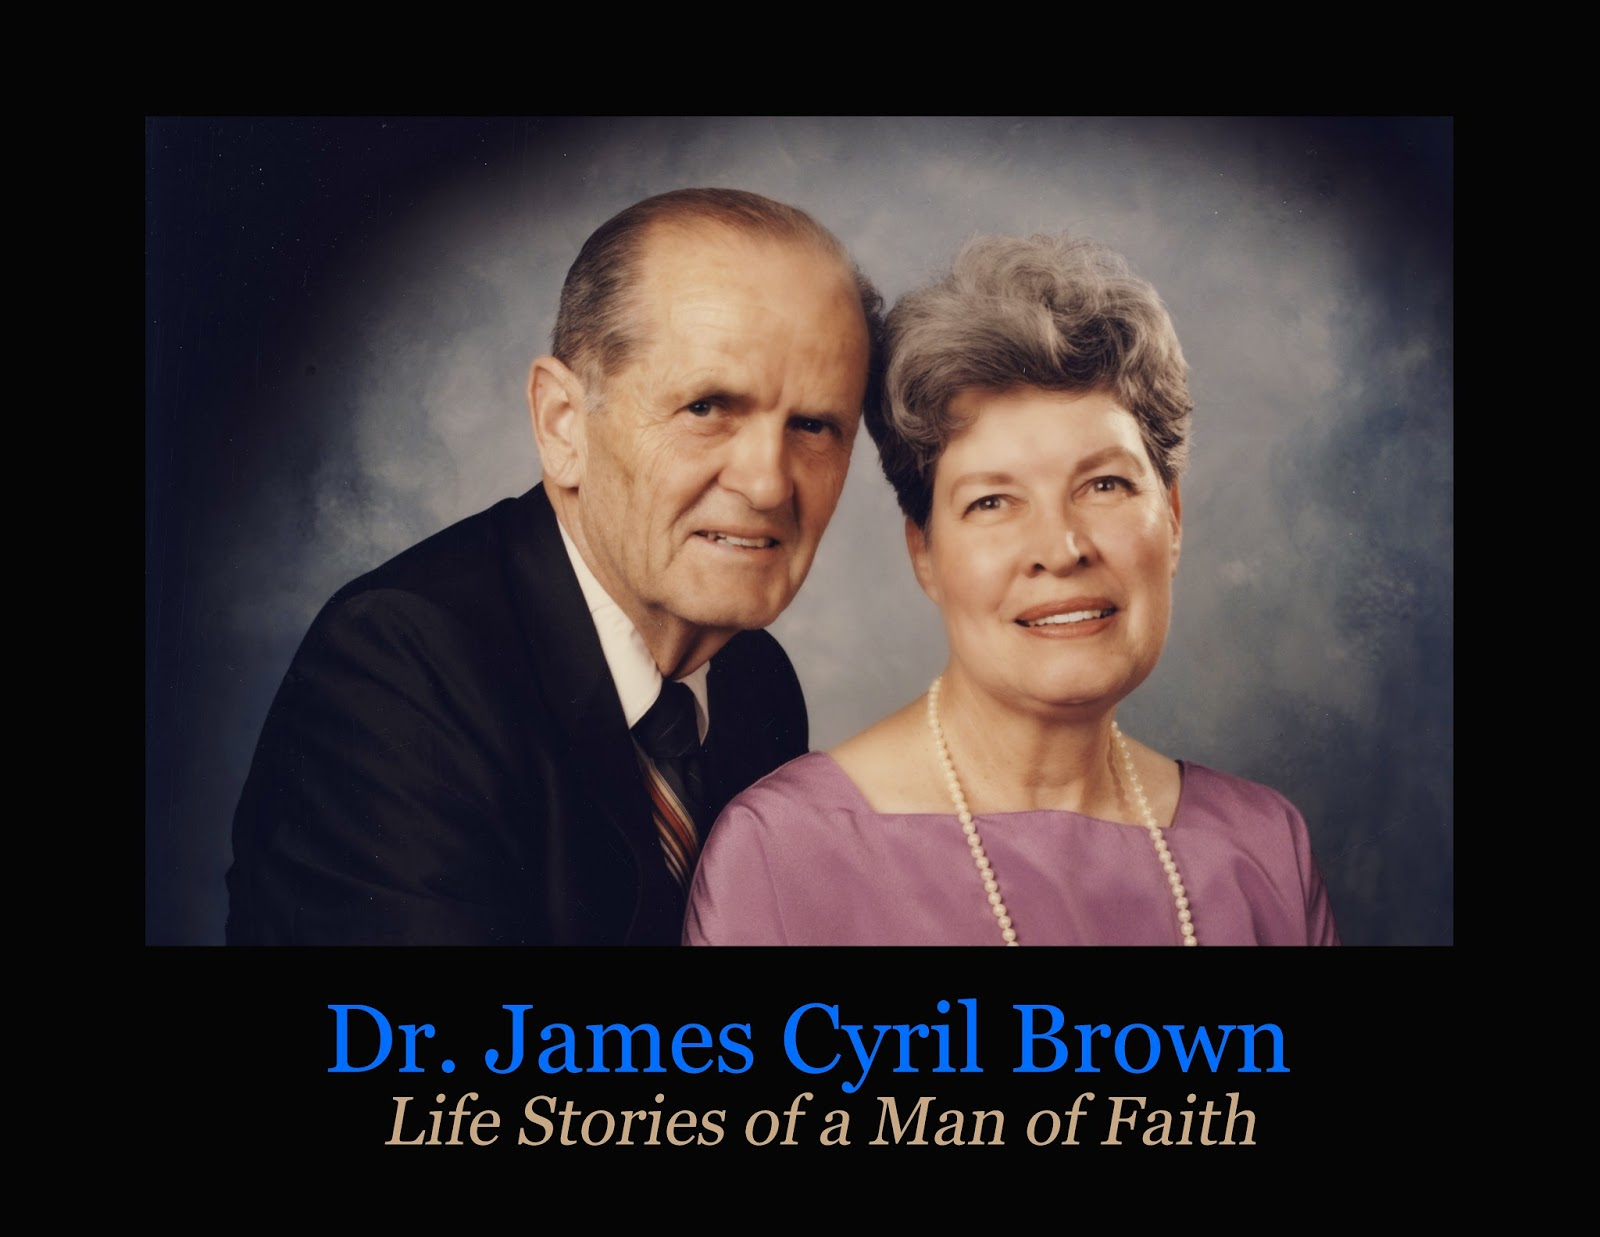 http://gatheringgardiners.blogspot.com/2014/11/dr-james-cyril-brown-life-stories-of.html